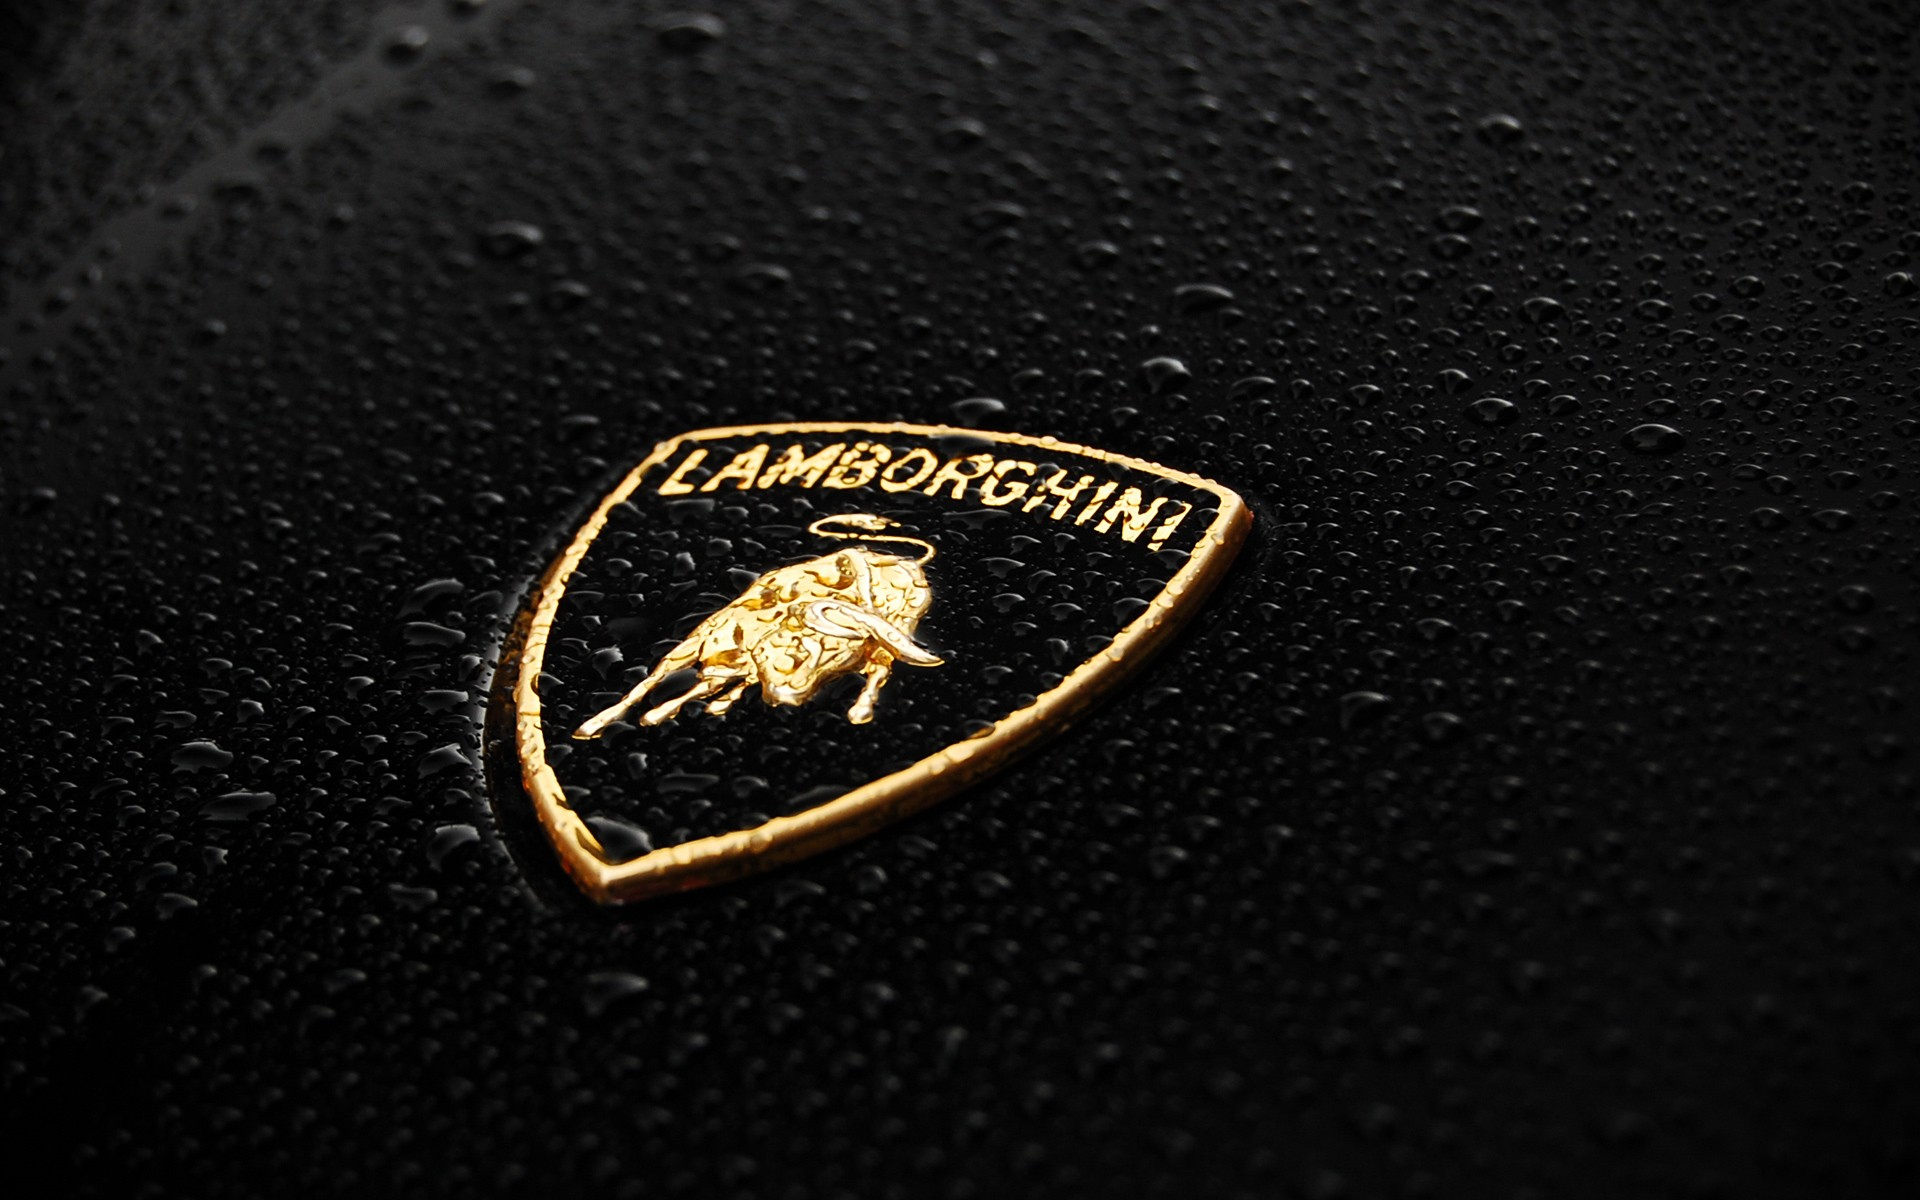 Lamborghini logo wallpaper hd car wallpapers x 1200 original wallpaper lamborghini logo voltagebd Images